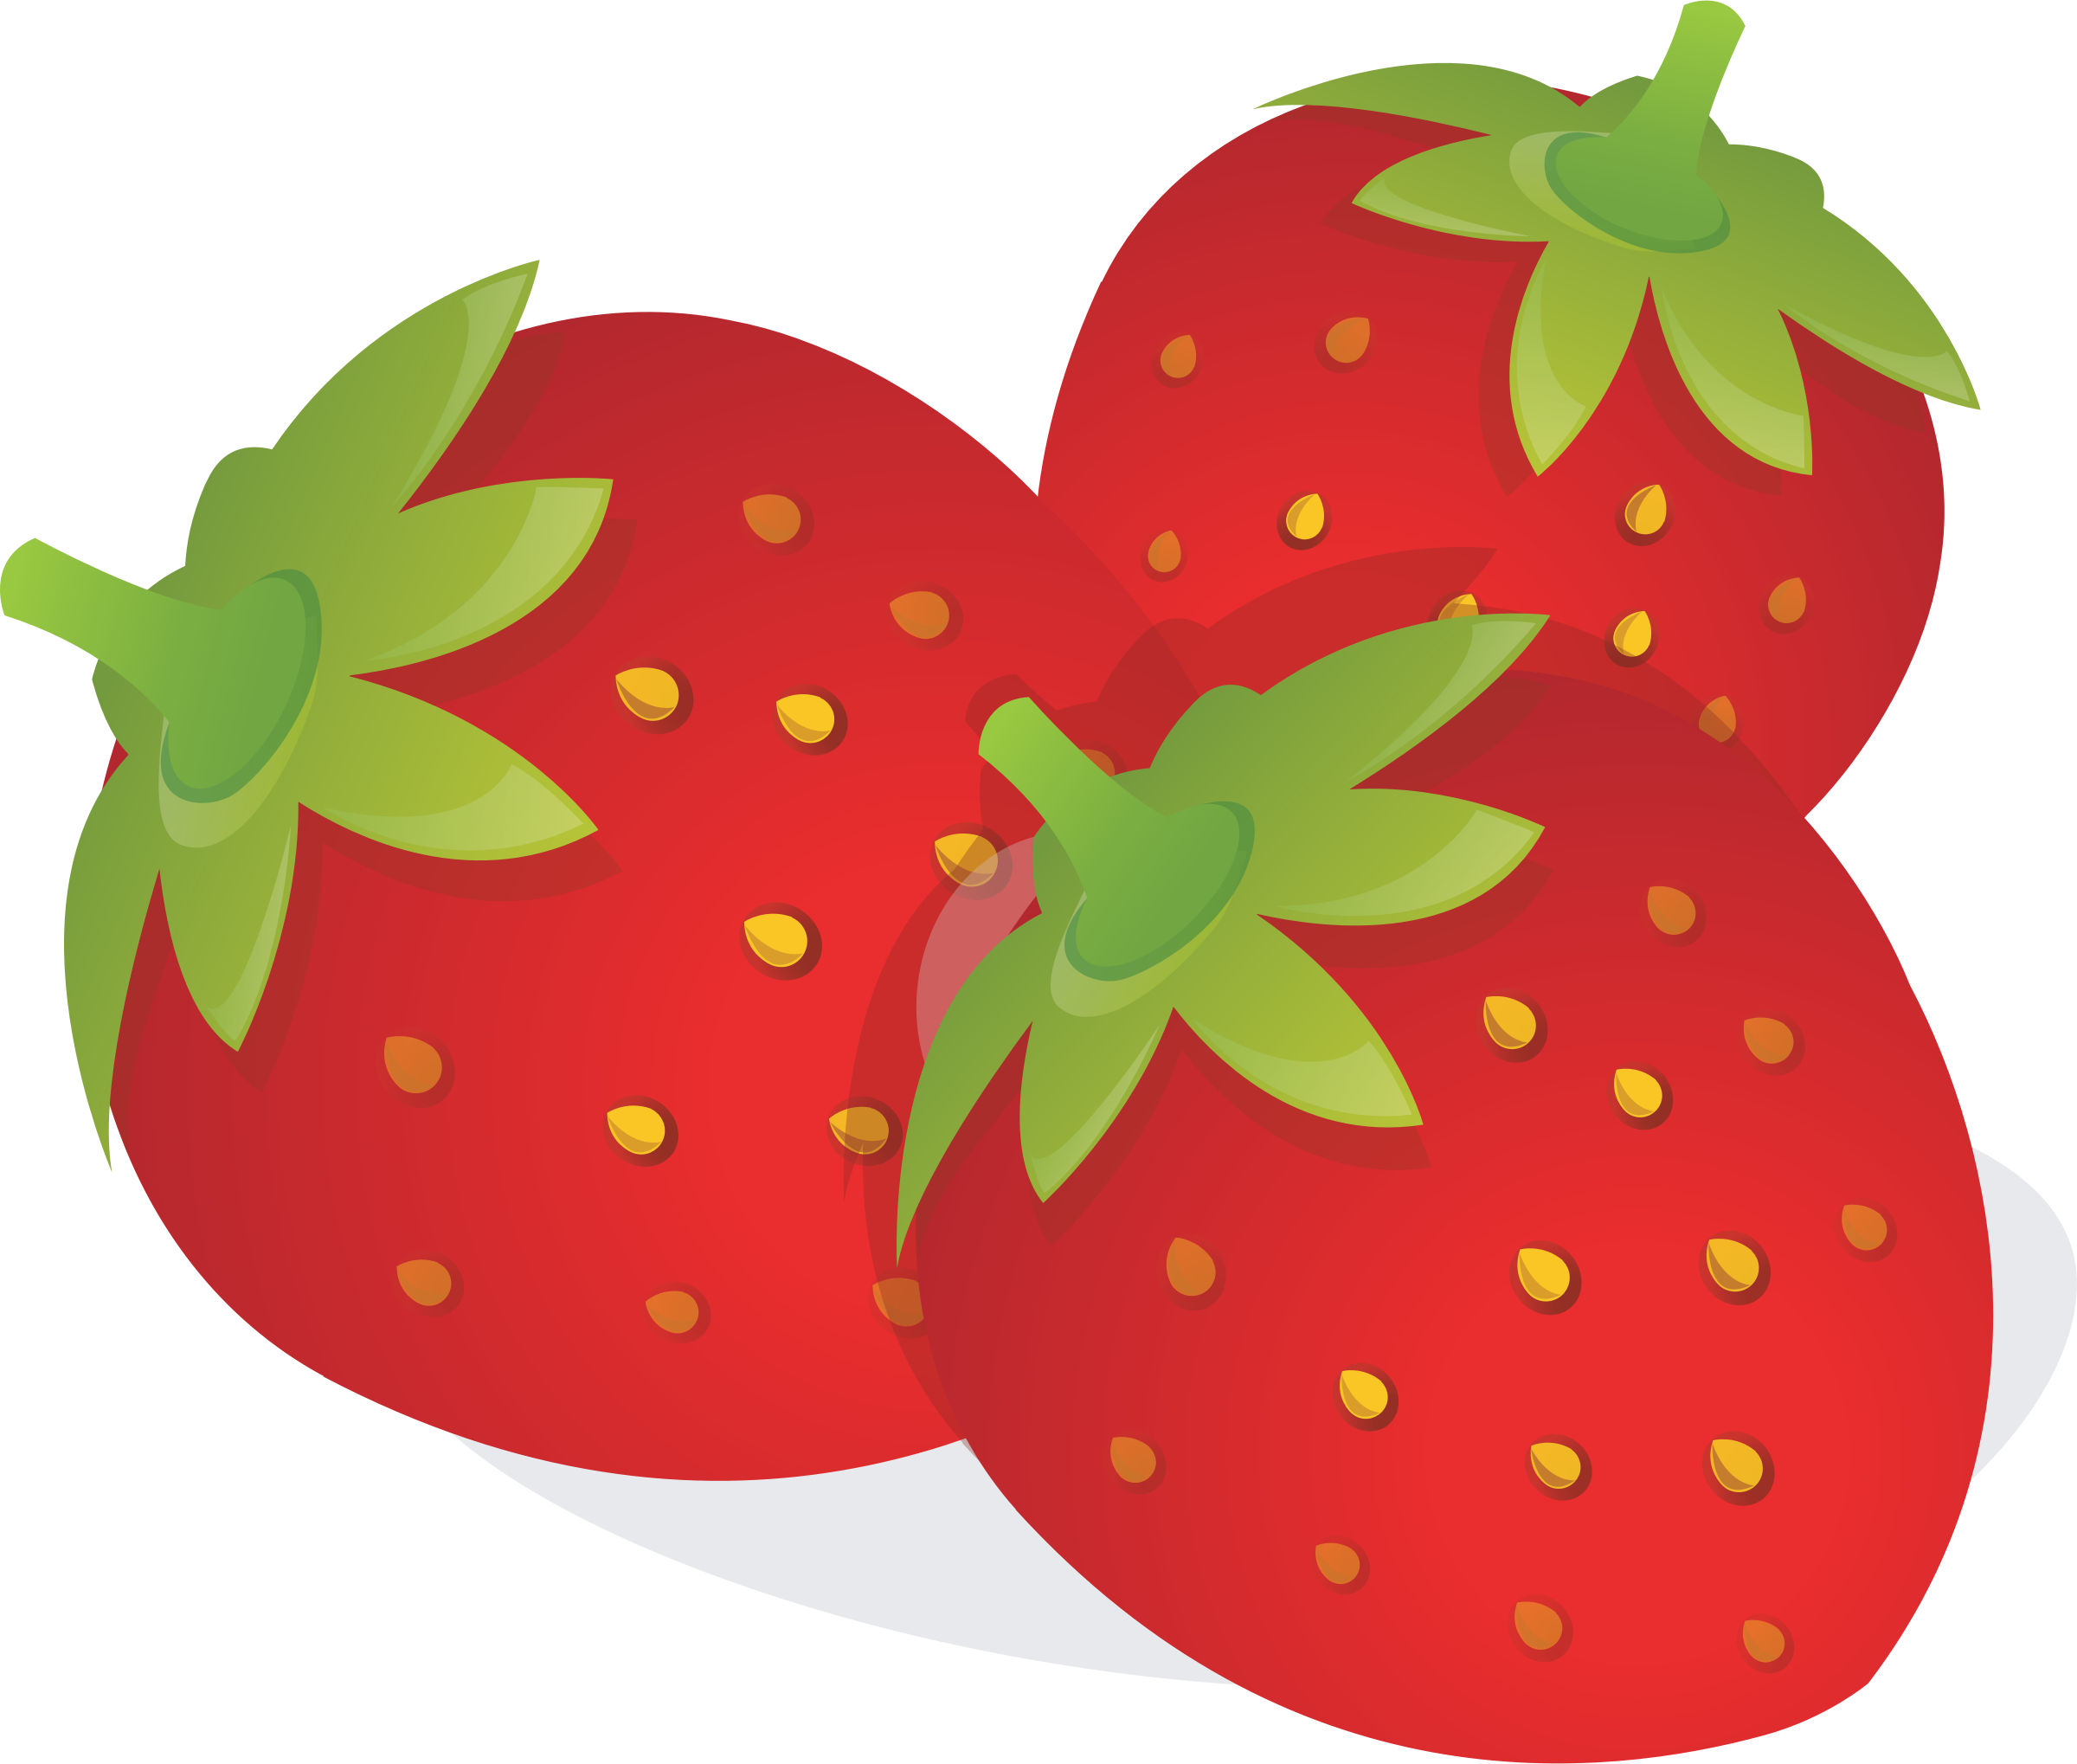 Covered clipart covered strawberry. Strawberries